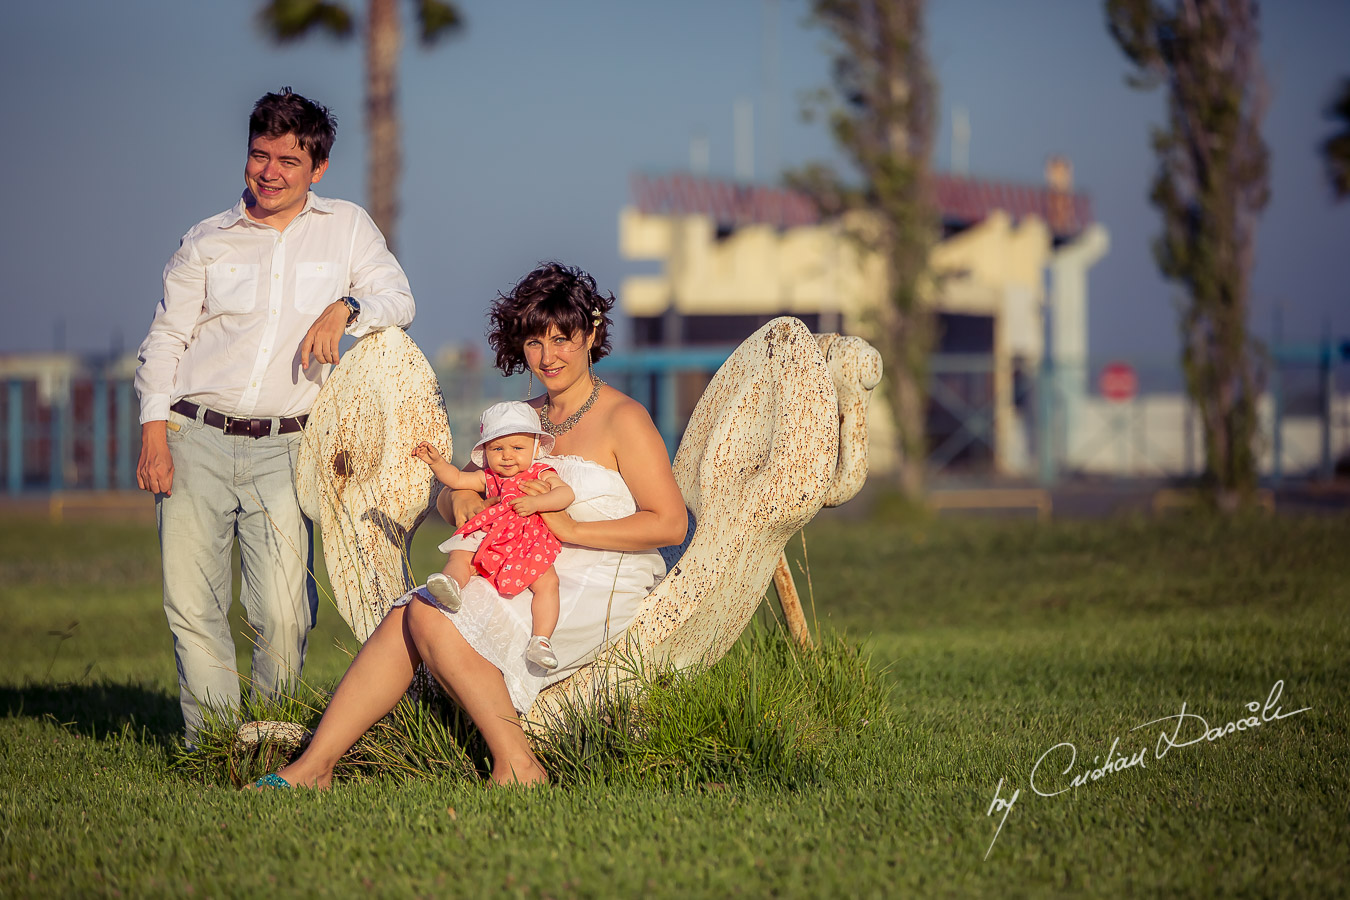 Family Photography in Limassol - Val, Val & Sofia-Aida 15